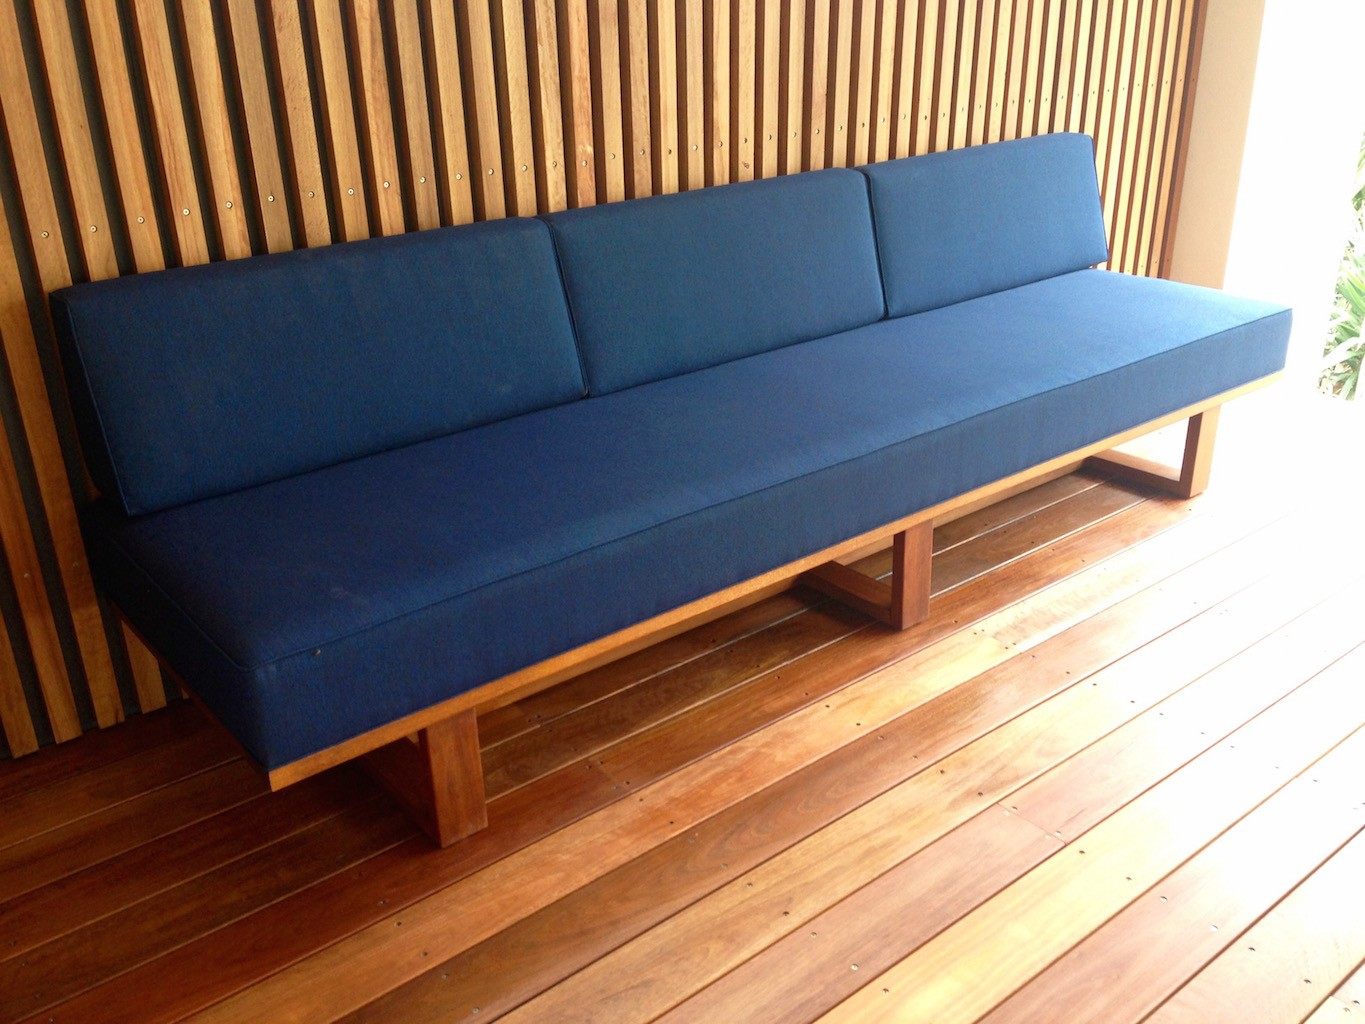 Norrebro daybed · founds custom made norrebro daybed ideal for outdoor use